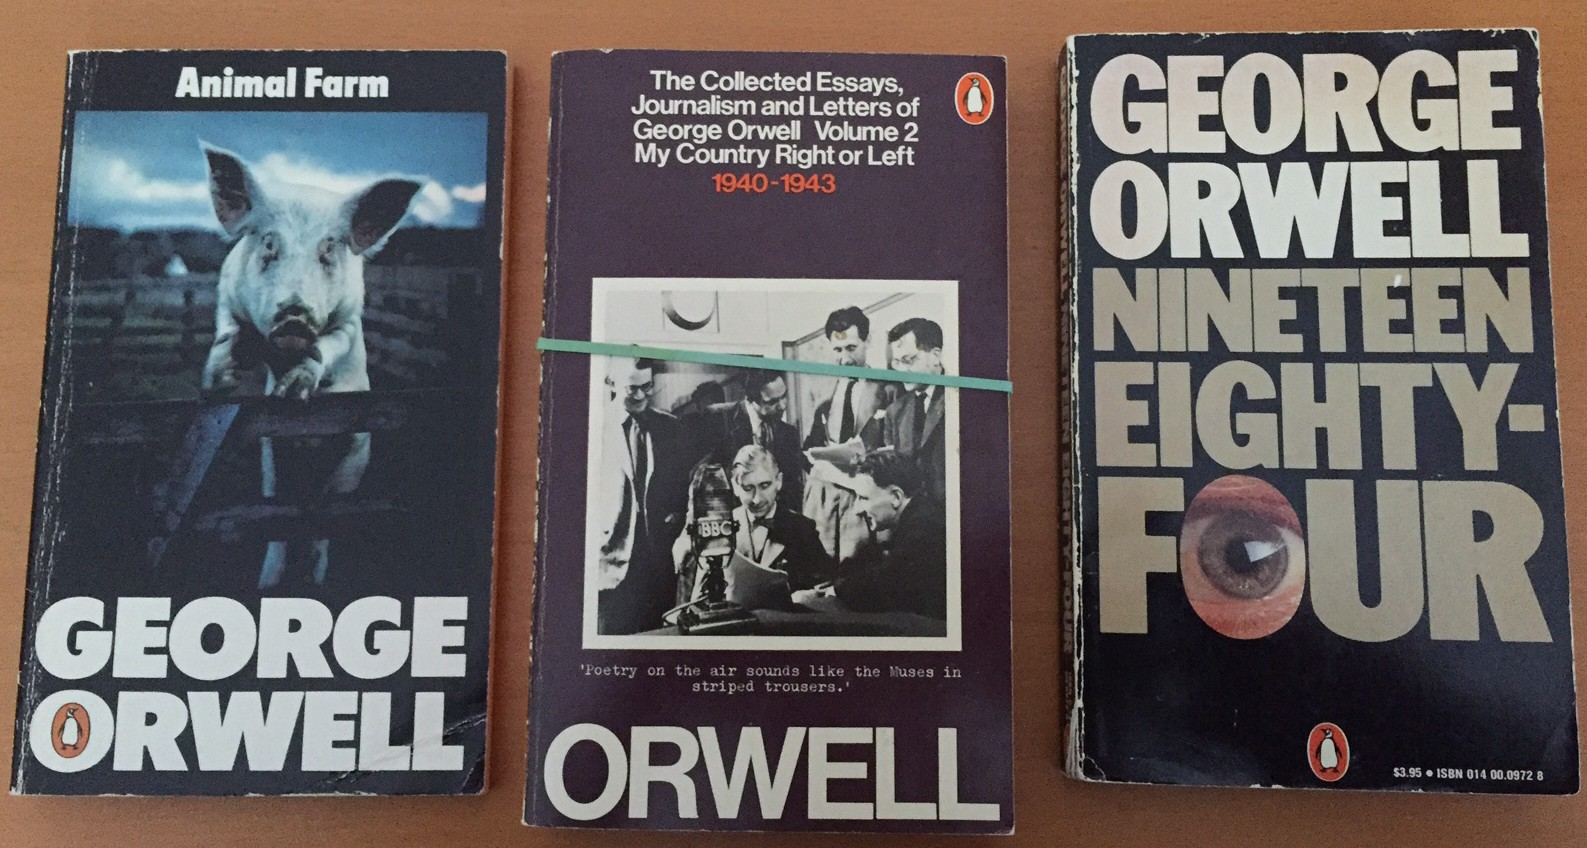 orwell essays on politics Fifty orwell essays, by george orwell, free ebook naturally the politics of the gem and magnet are conservative, but in a completely pre-1914 style.